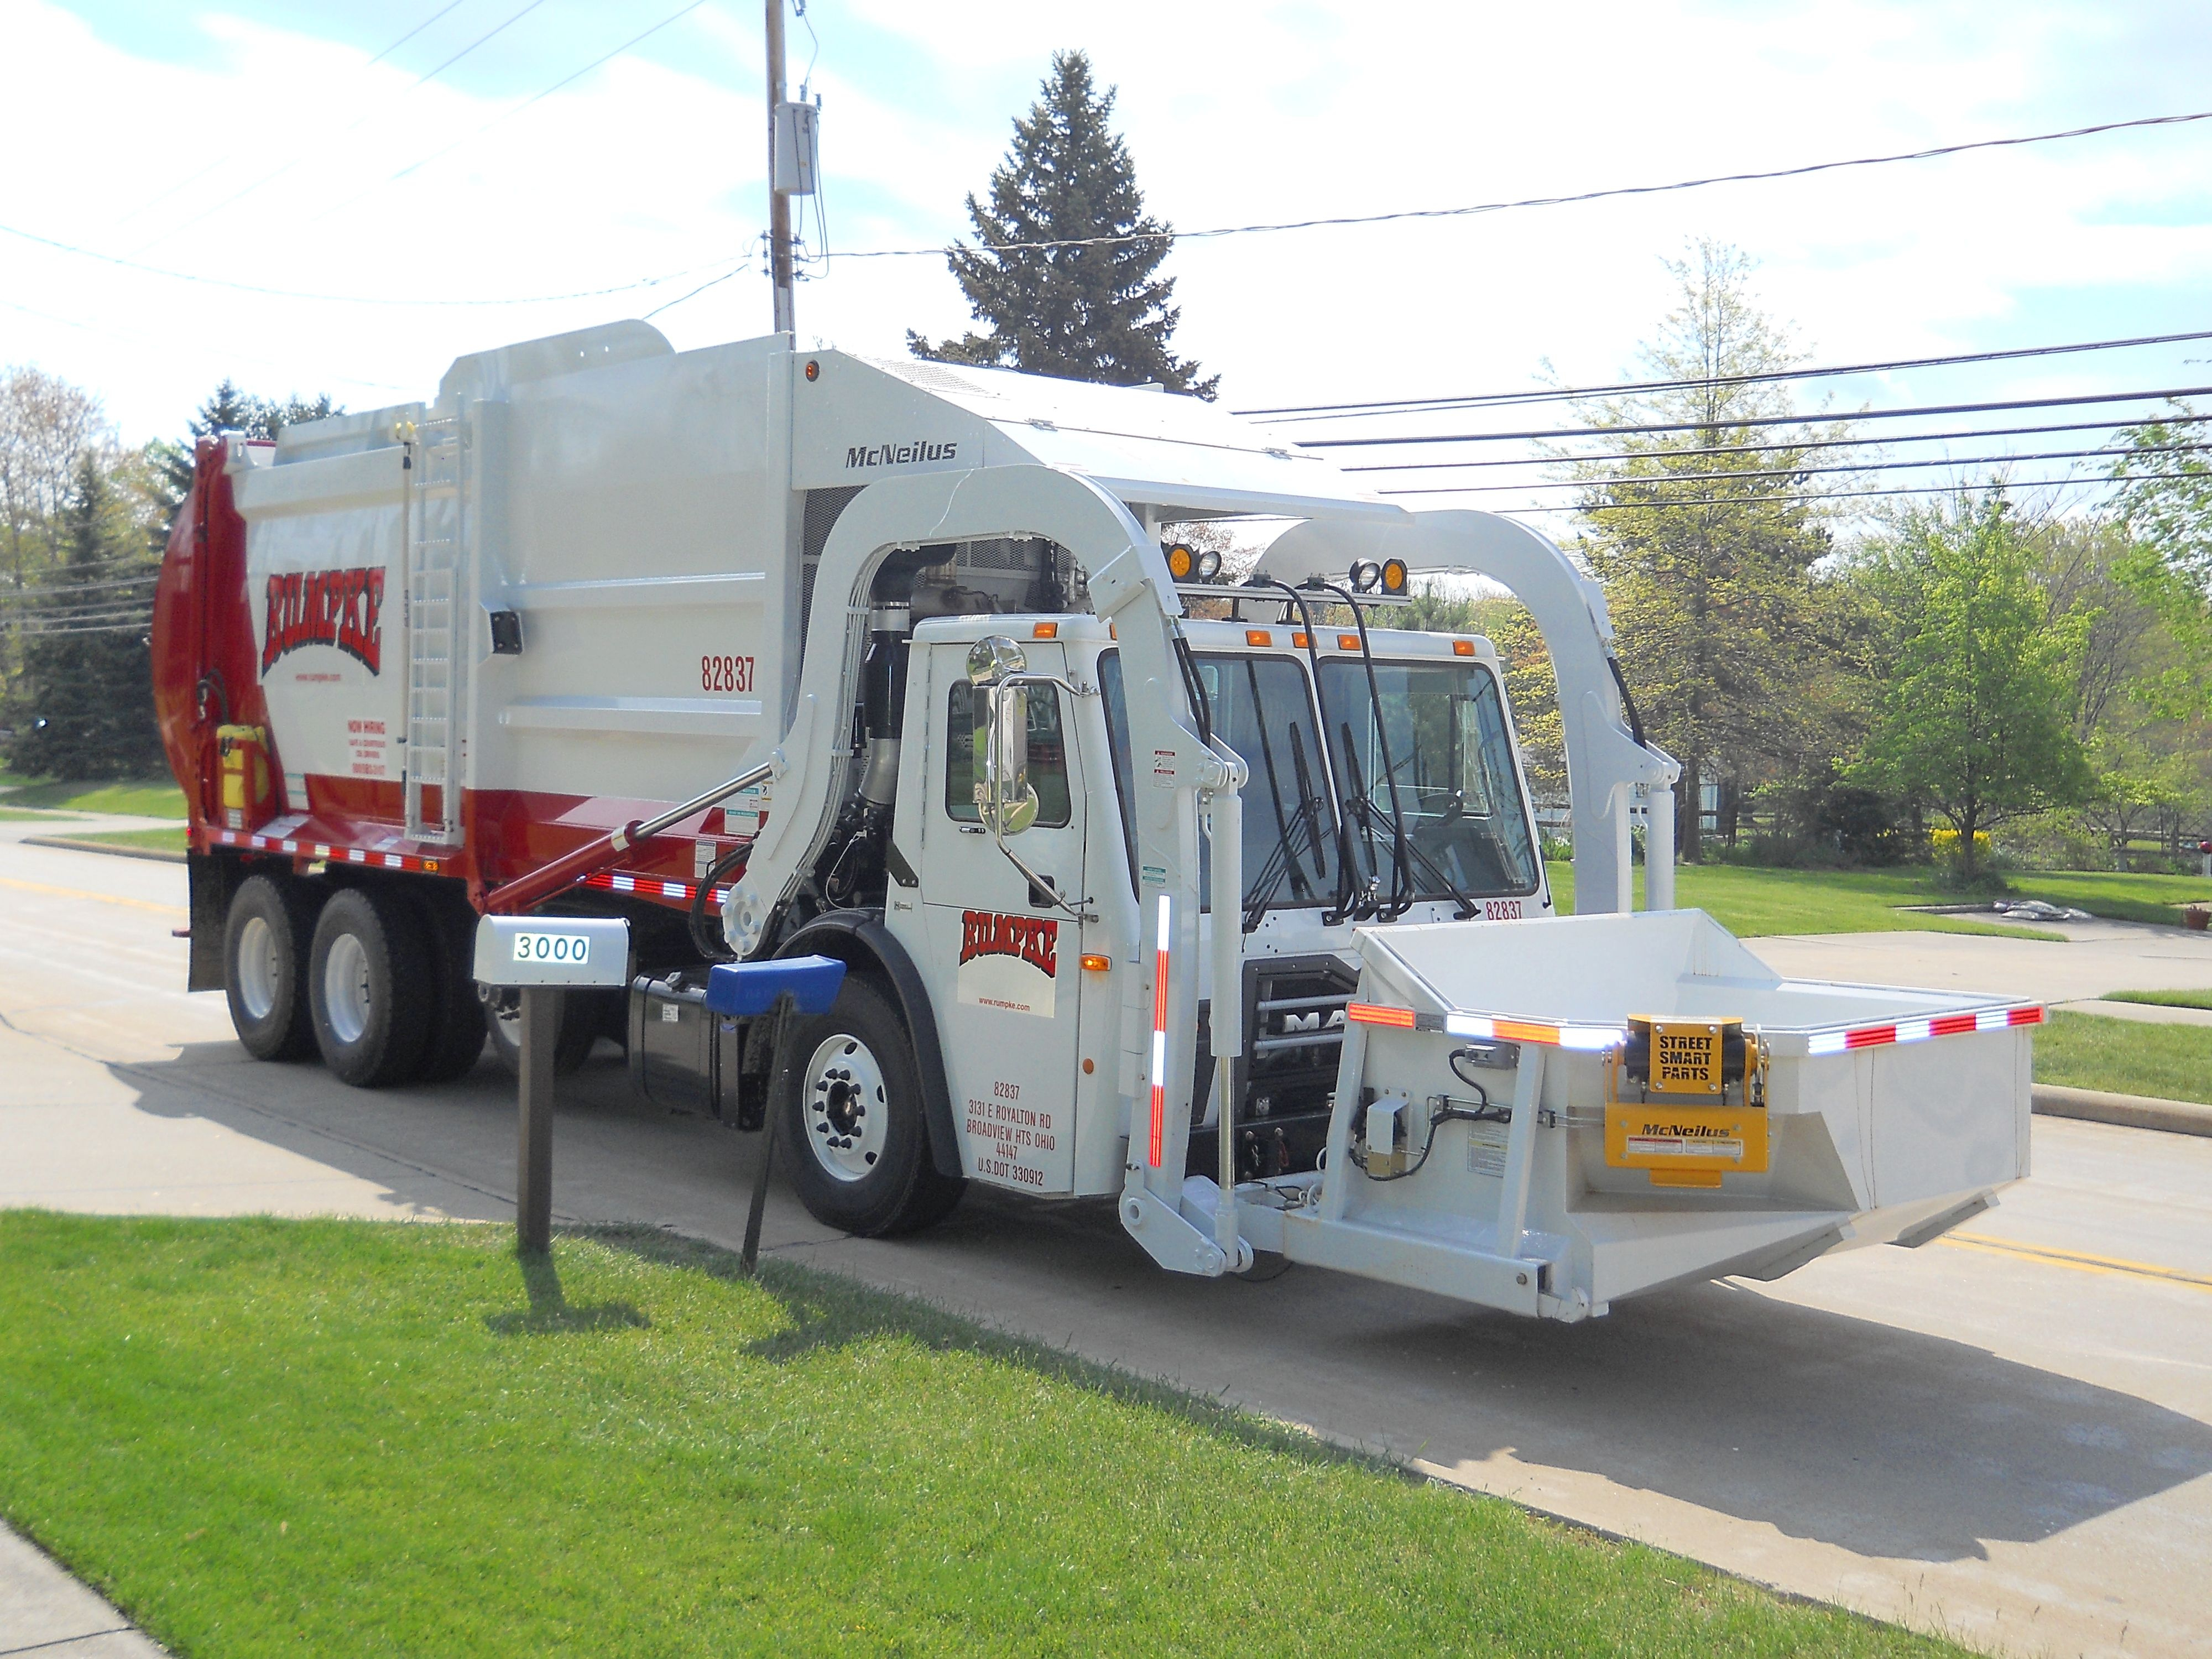 medium resolution of this residential front load truck aka resi front loader allows the driver to load